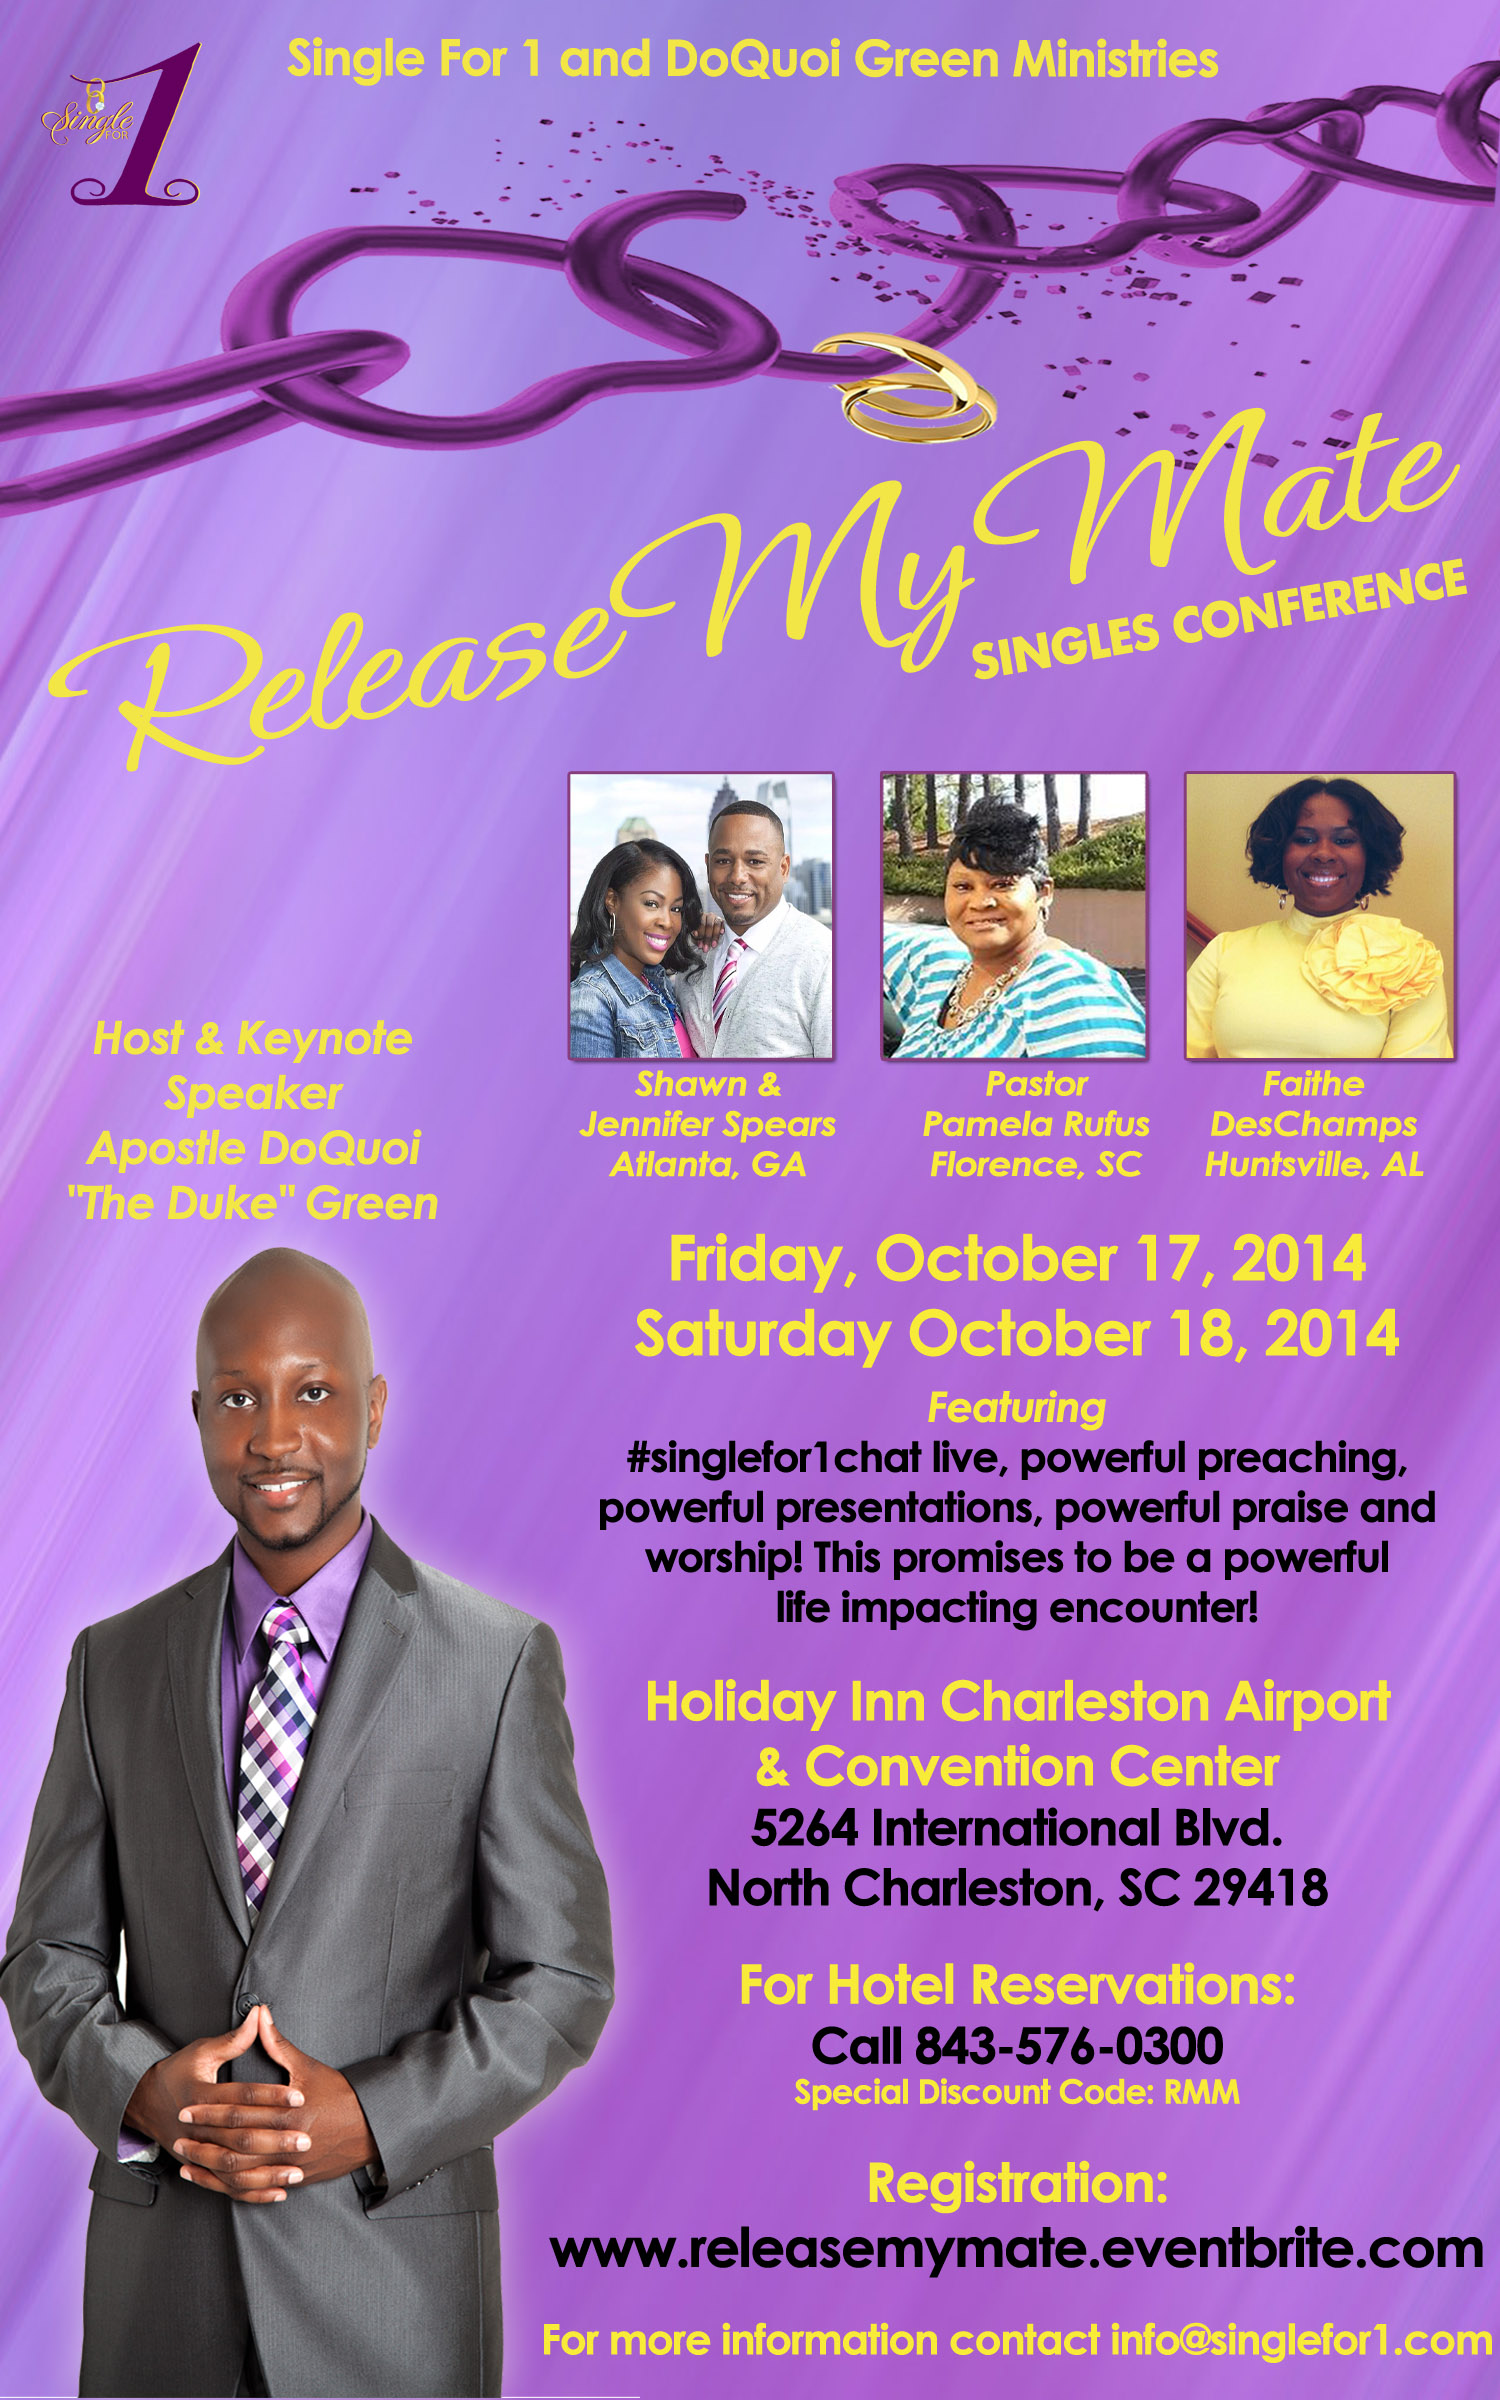 Singles conference